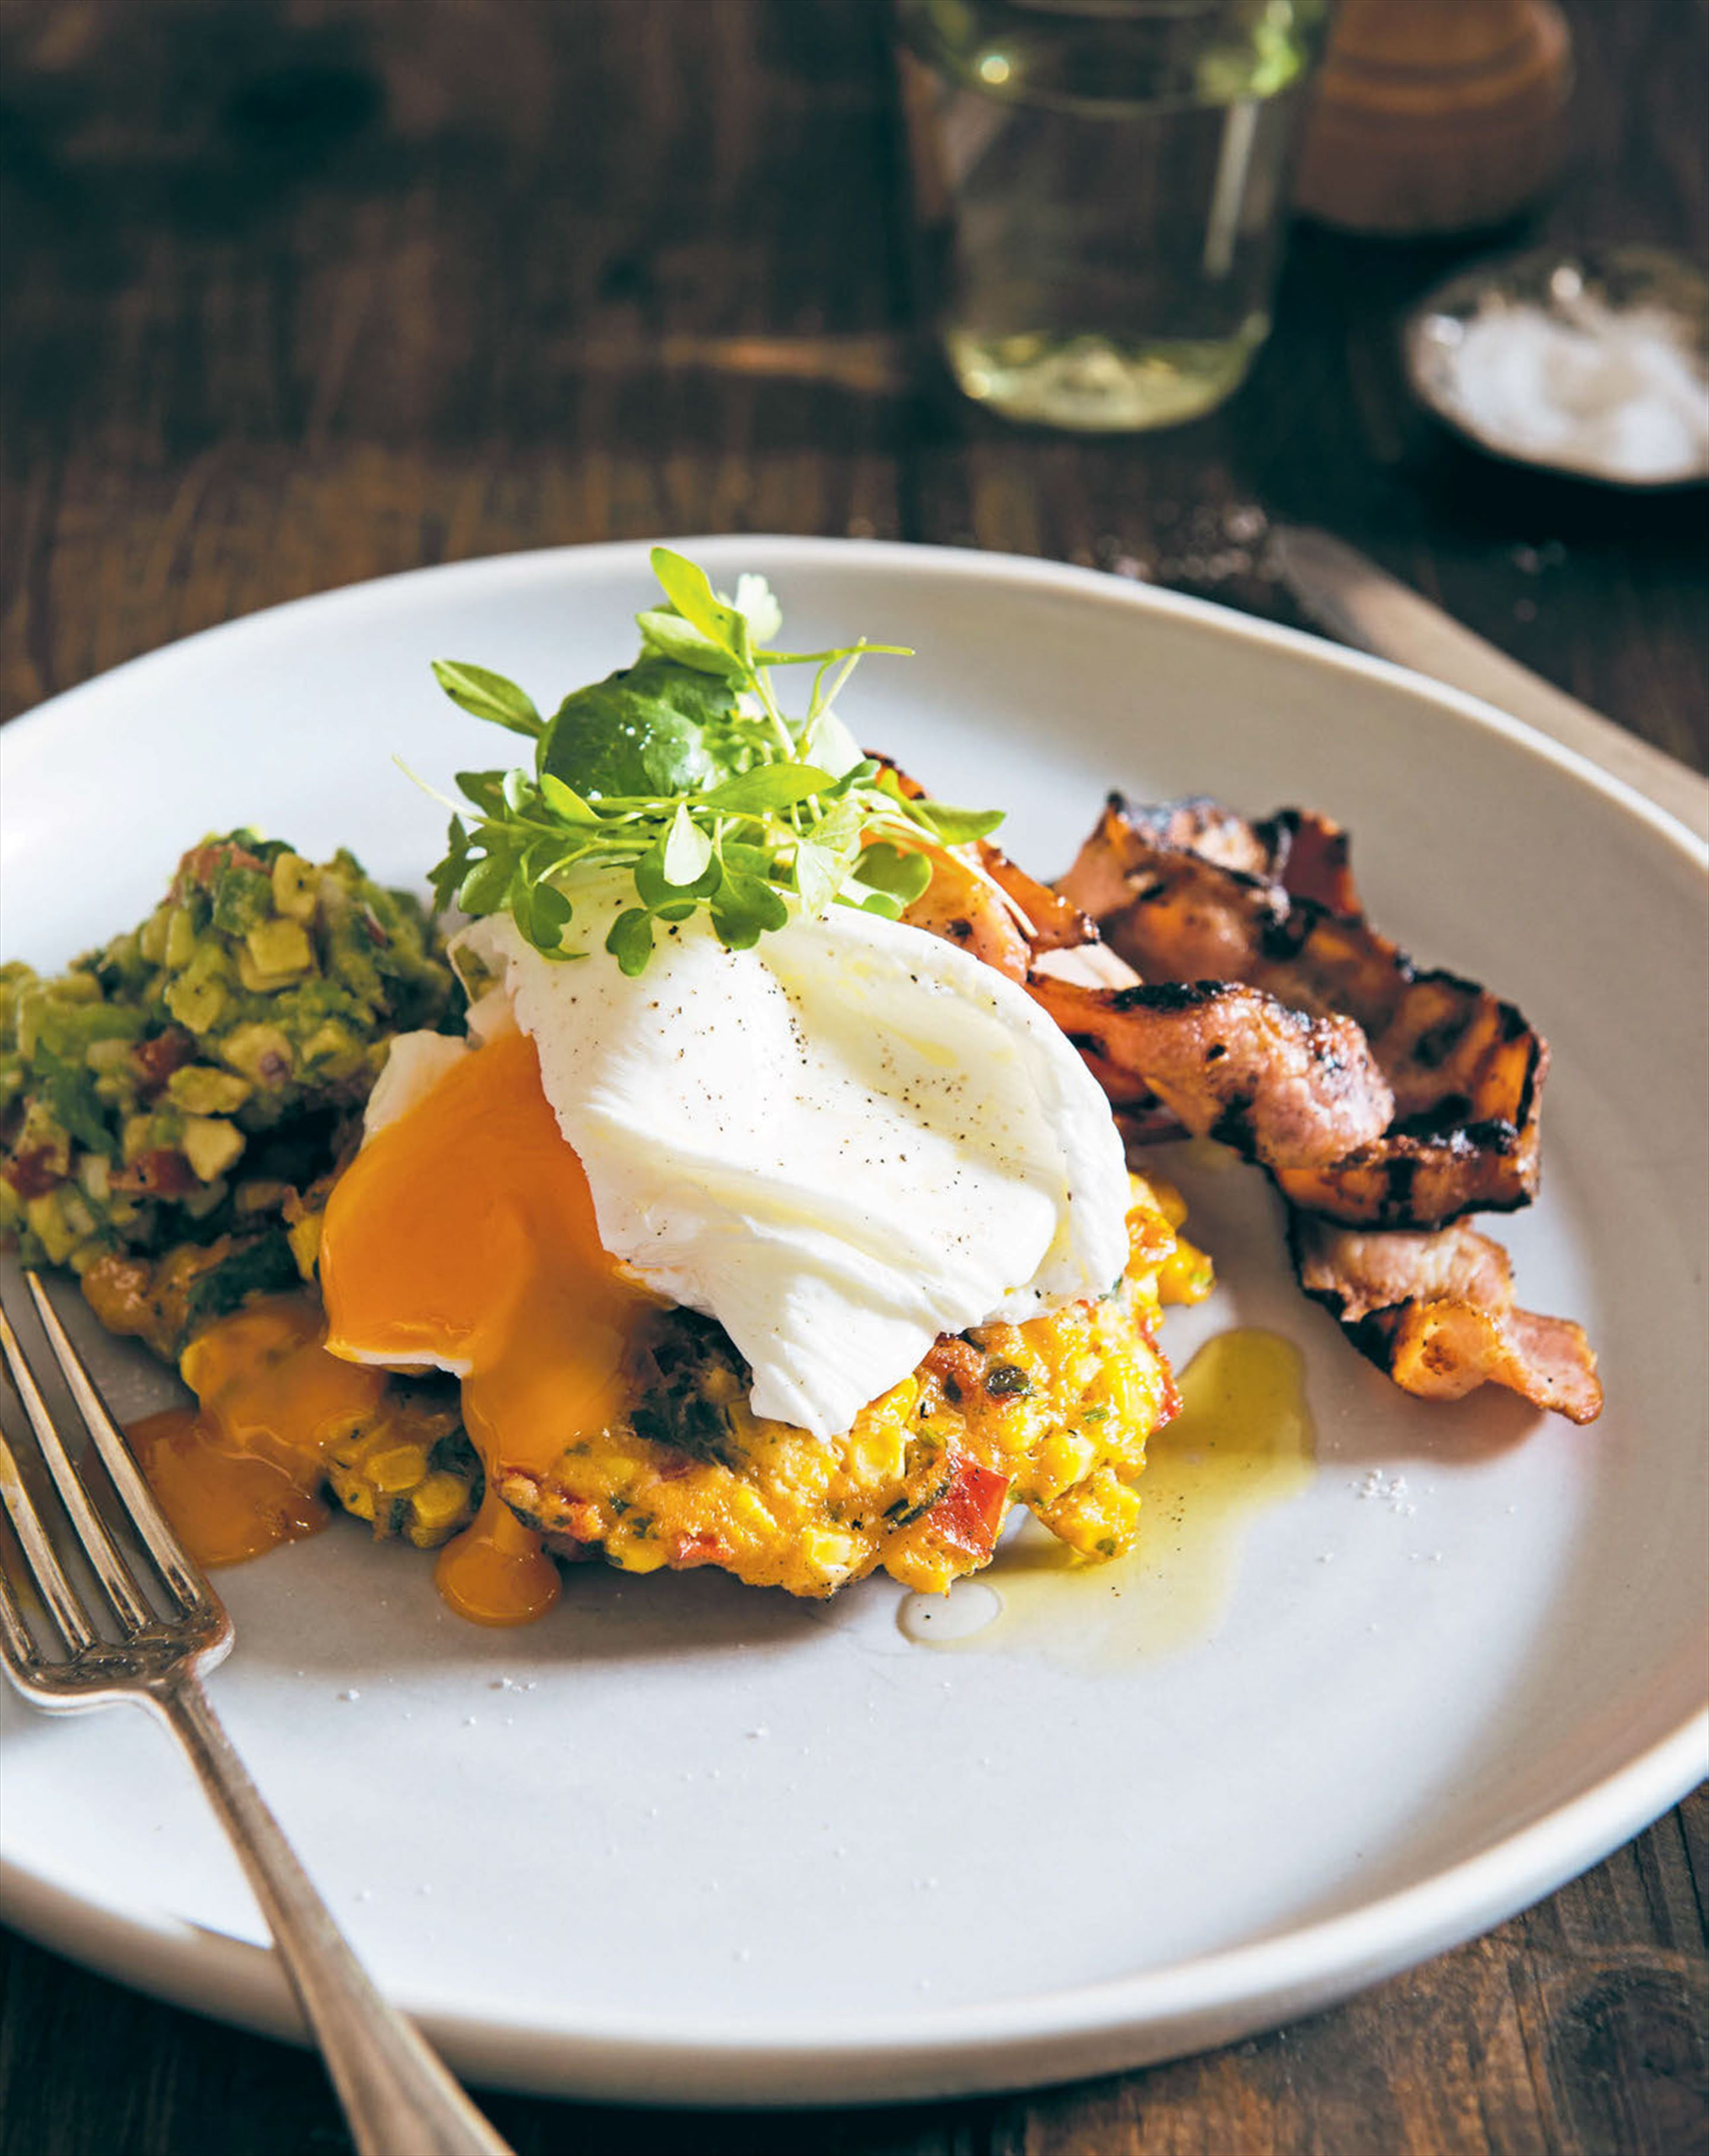 Corn cakes with grilled bacon, avocado salsa & poached eggs